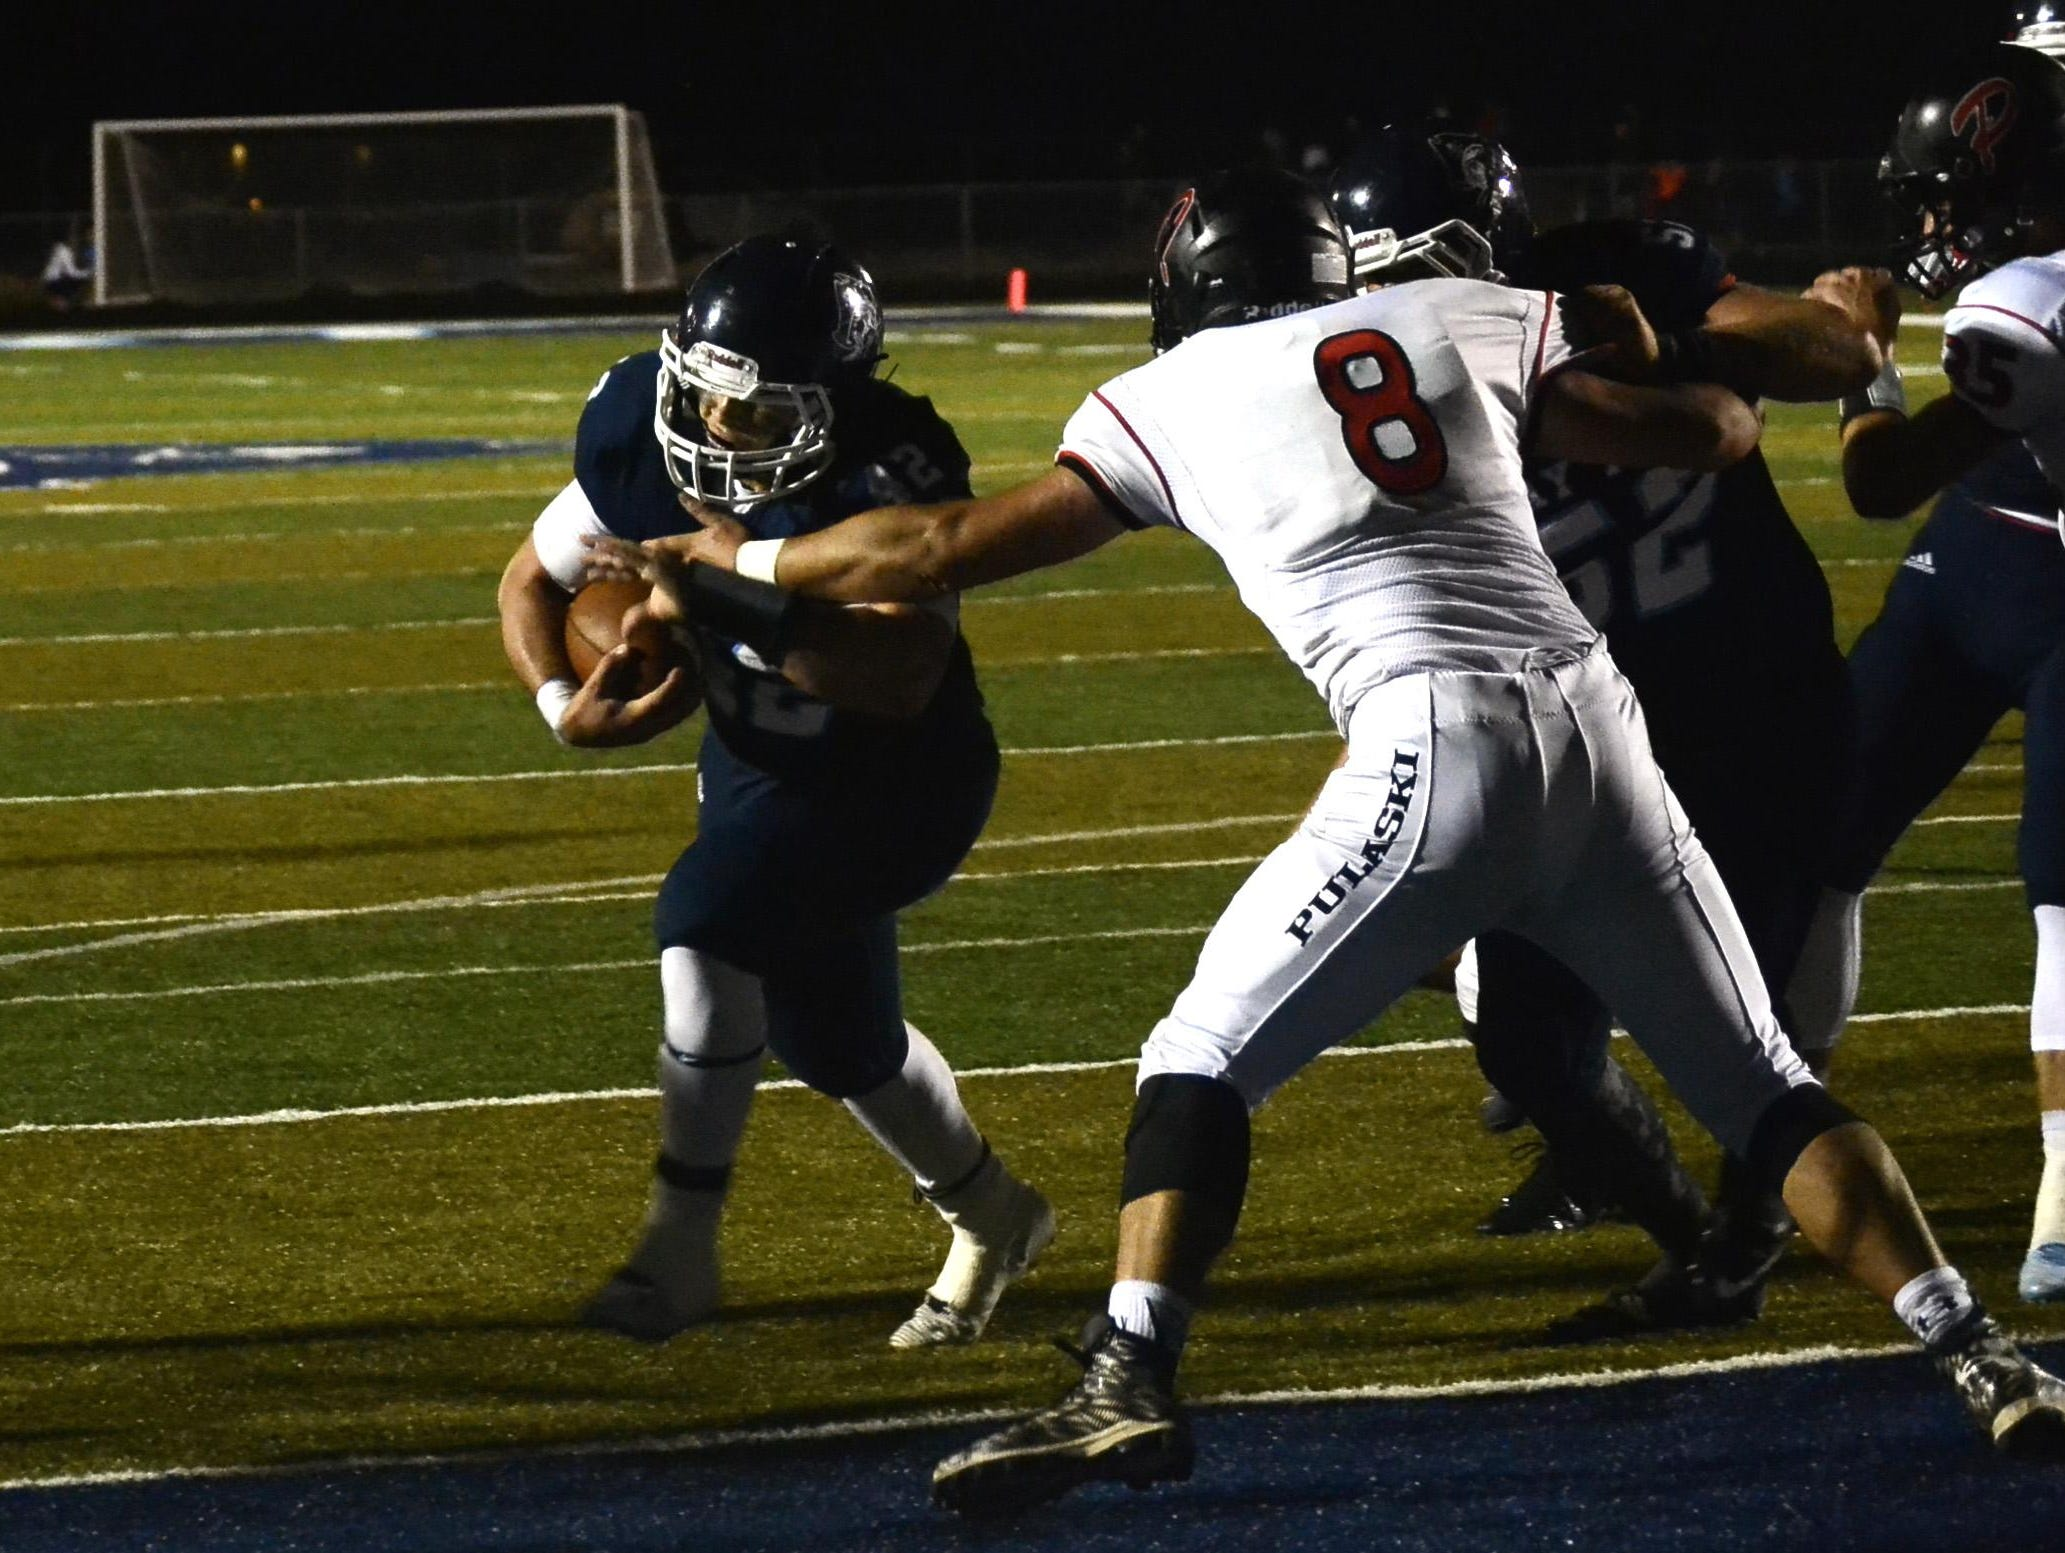 Bay Port's Evan Bindas rushes past Pulaski's Michael Woodworth and into the endzone in Friday's FRCC game, won by the host Pirates 42-14.